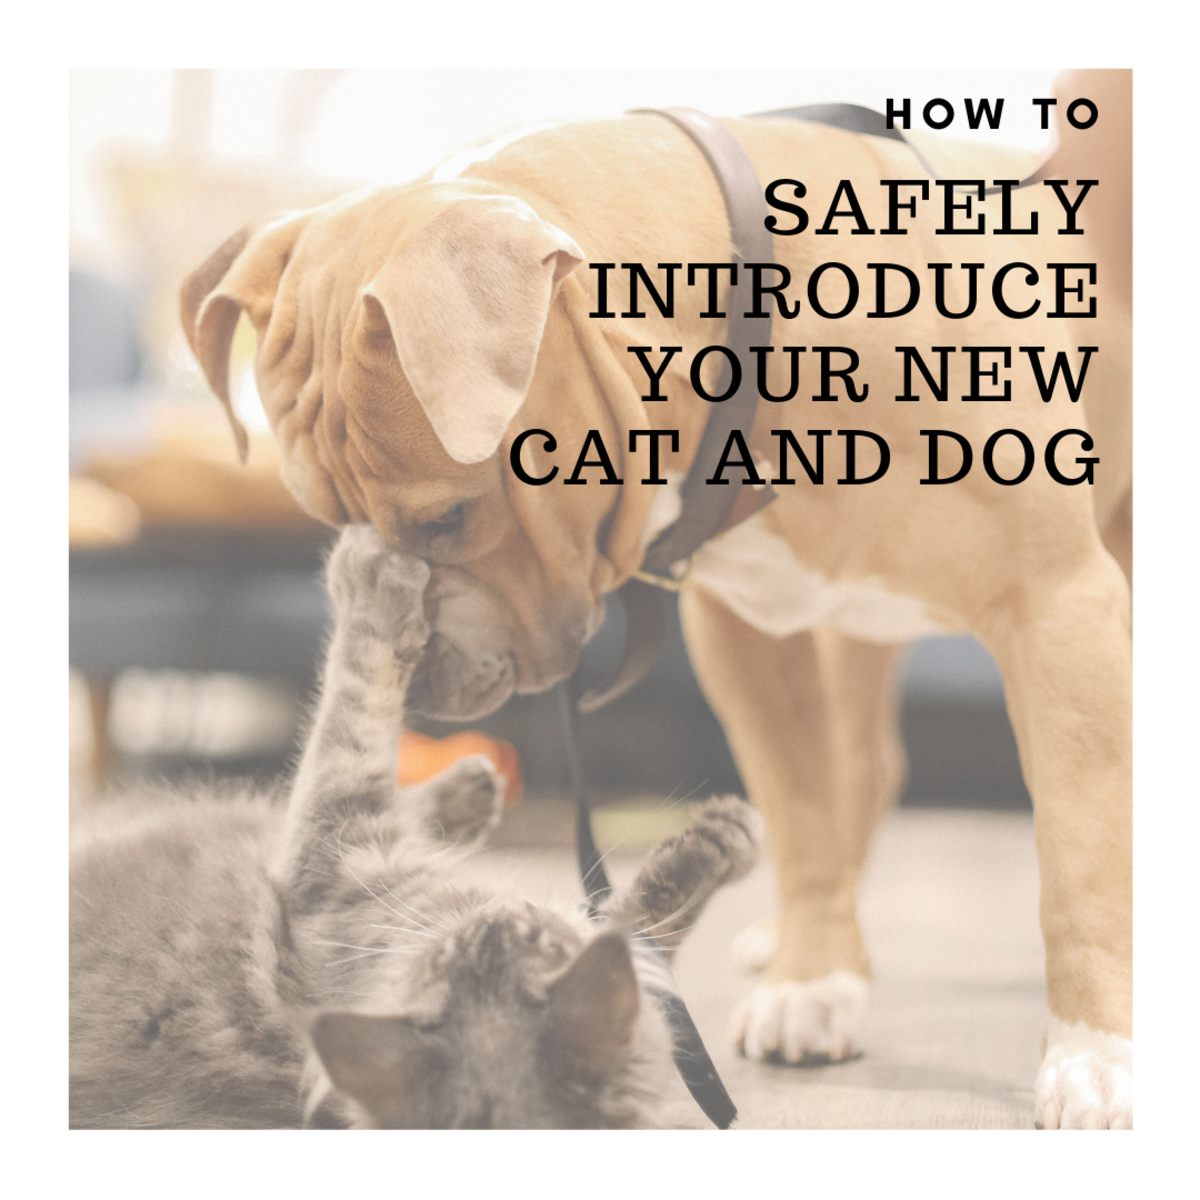 It is possible for your cat and new puppy to meet and get along.